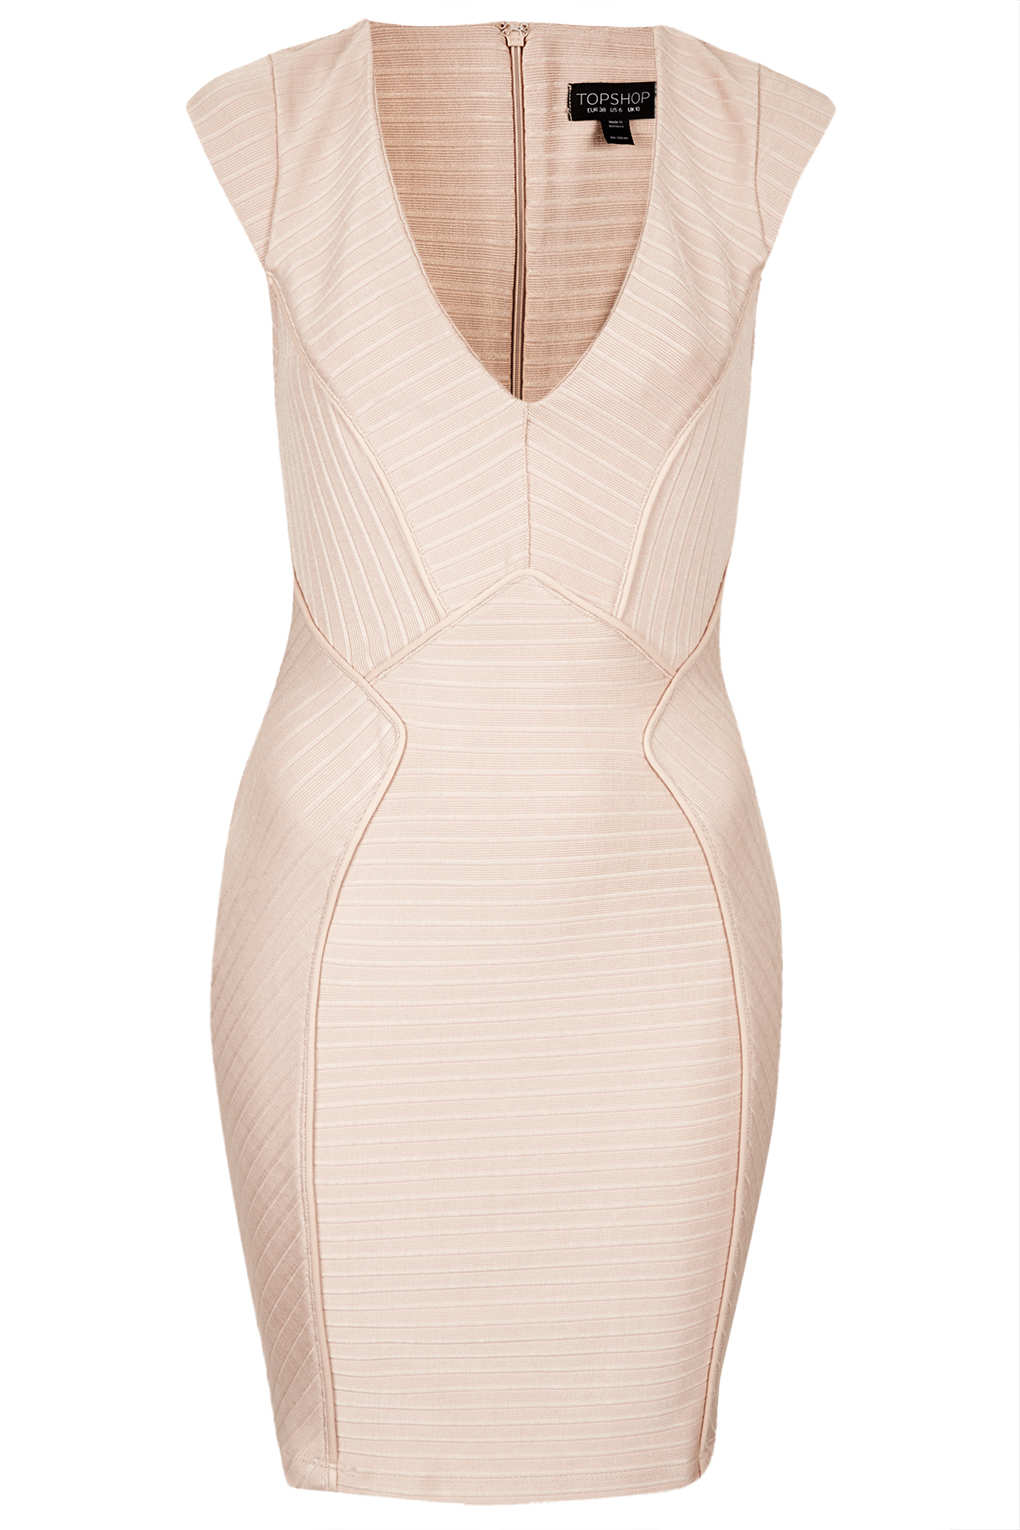 Lyst Topshop Ribbed V Bandage Bodycon Dress In Natural